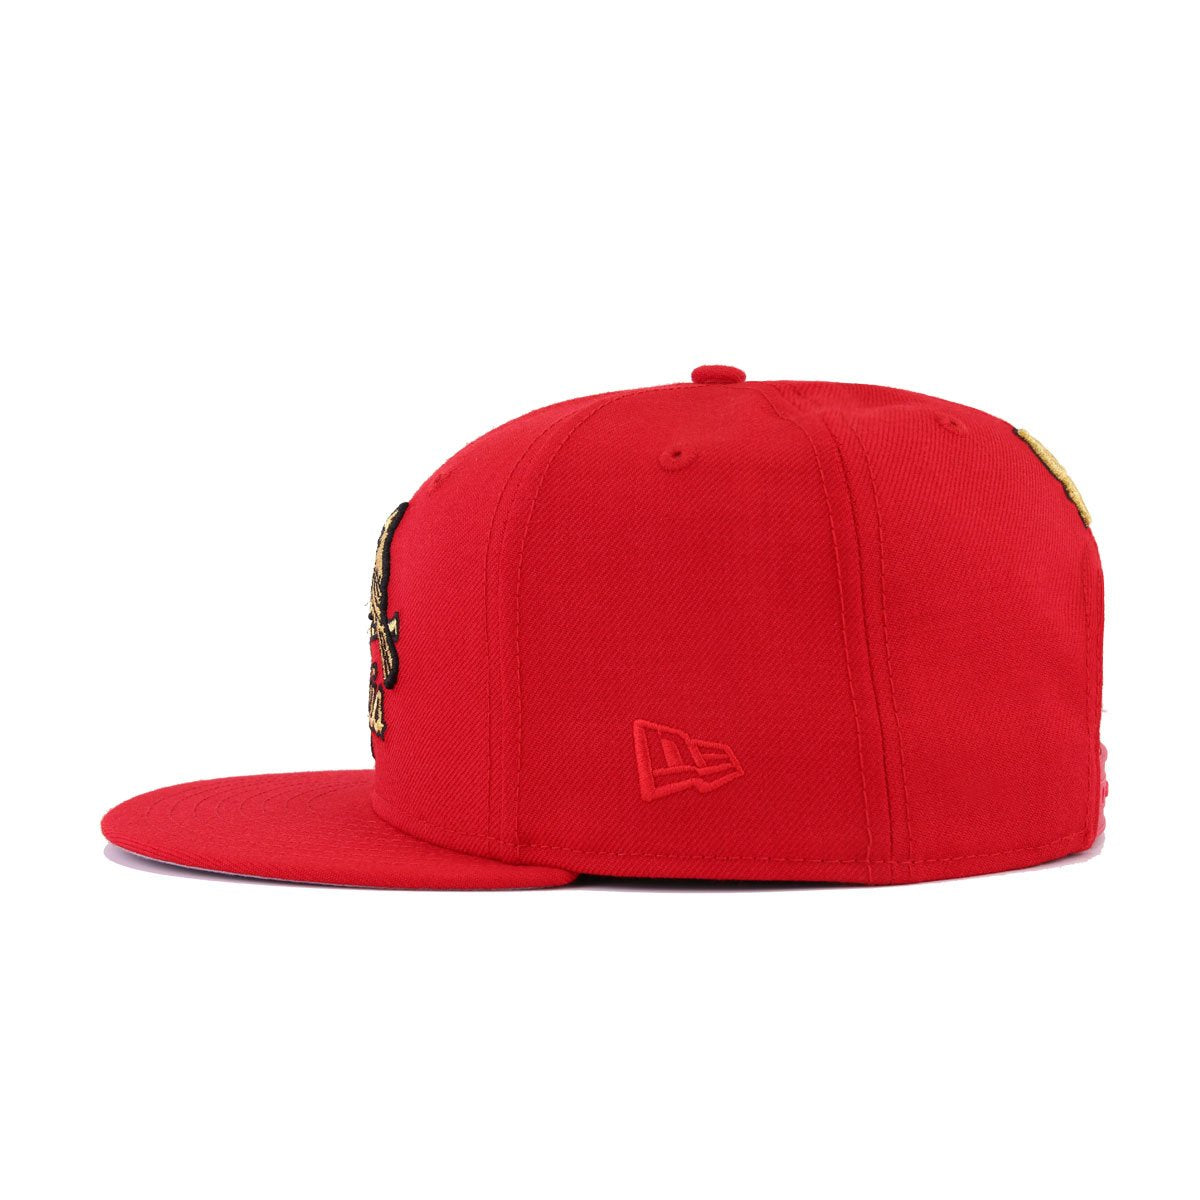 St Louis Cardinals Scarlet Metallic Gold New Era 9Fifty Snapback